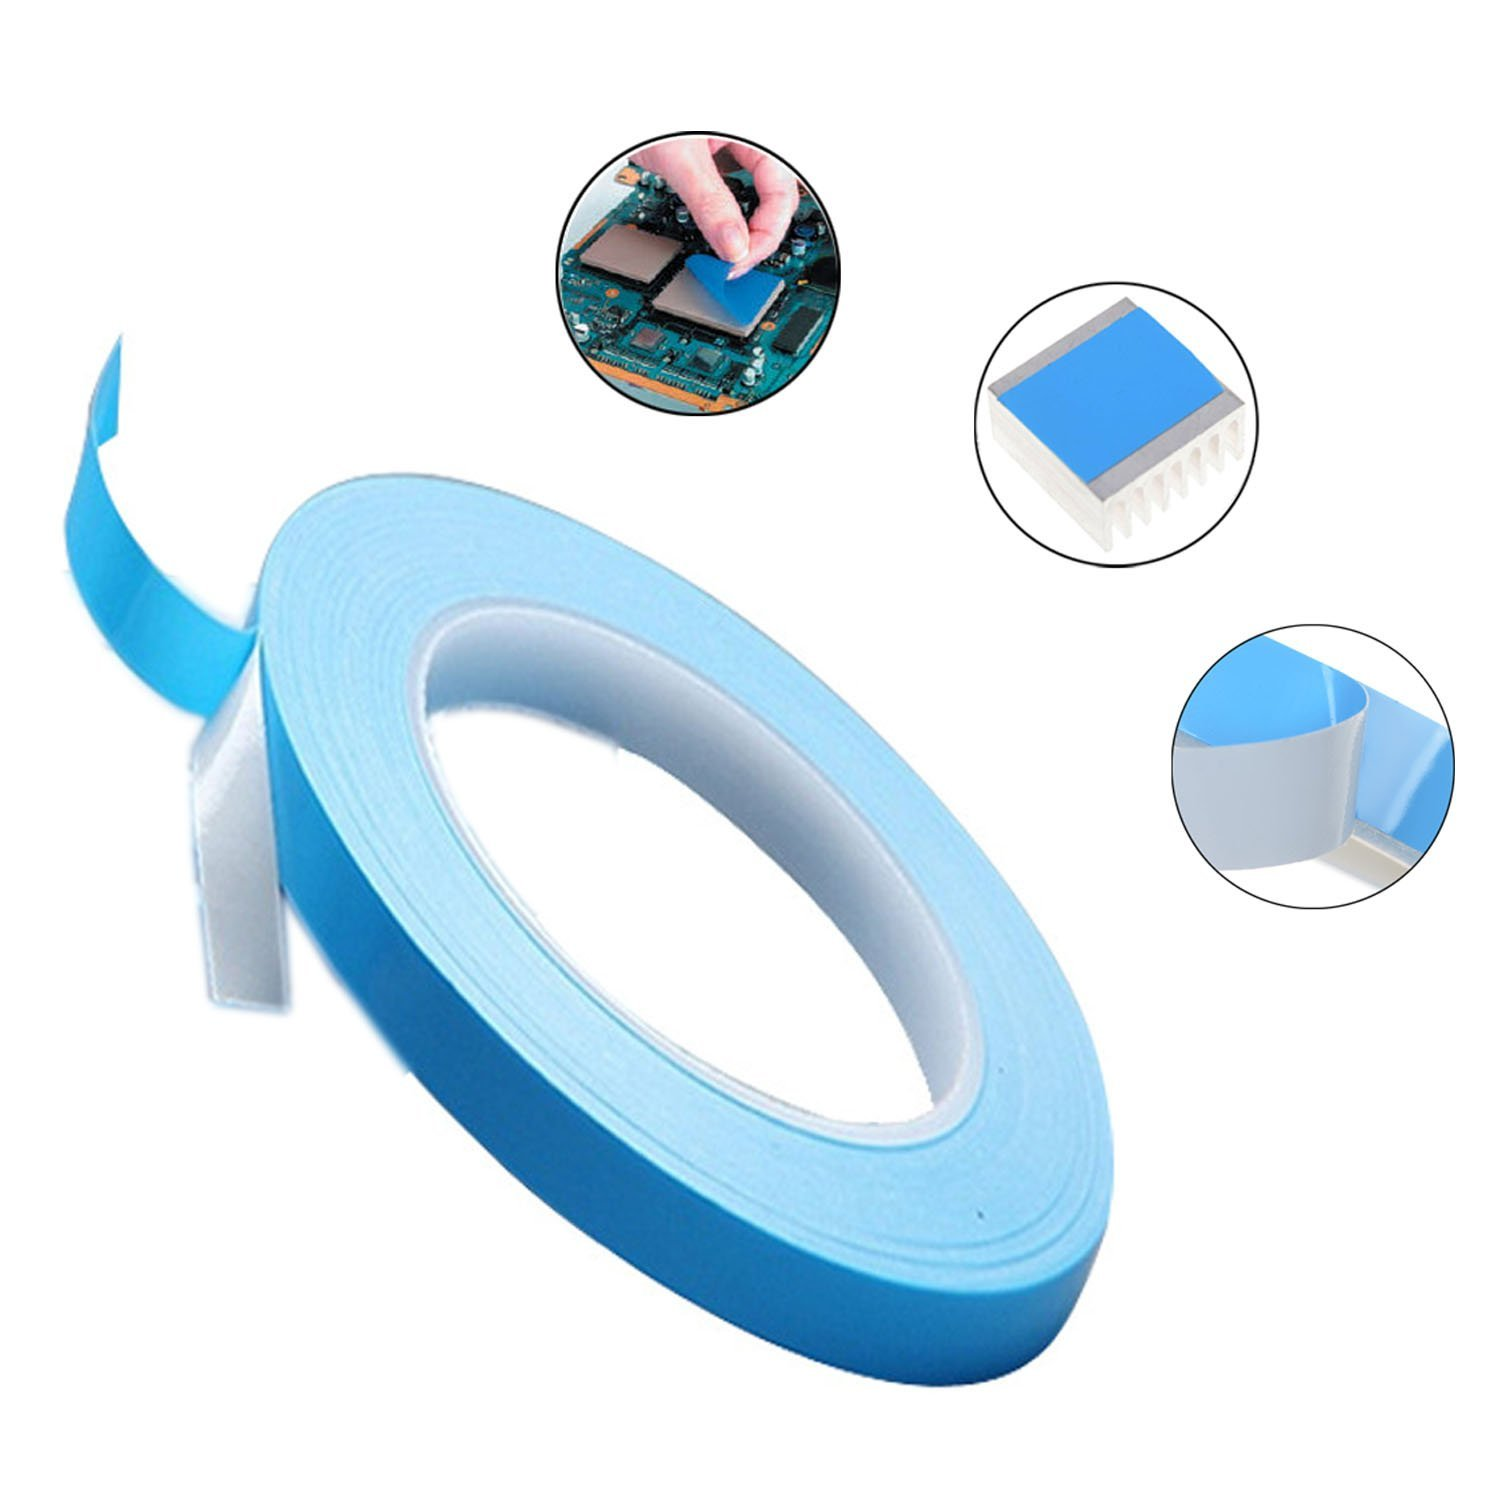 Fiberglass Thermal Conductive Tape for Heat Sink pad of LED, LCD, CPU etc Featured Image